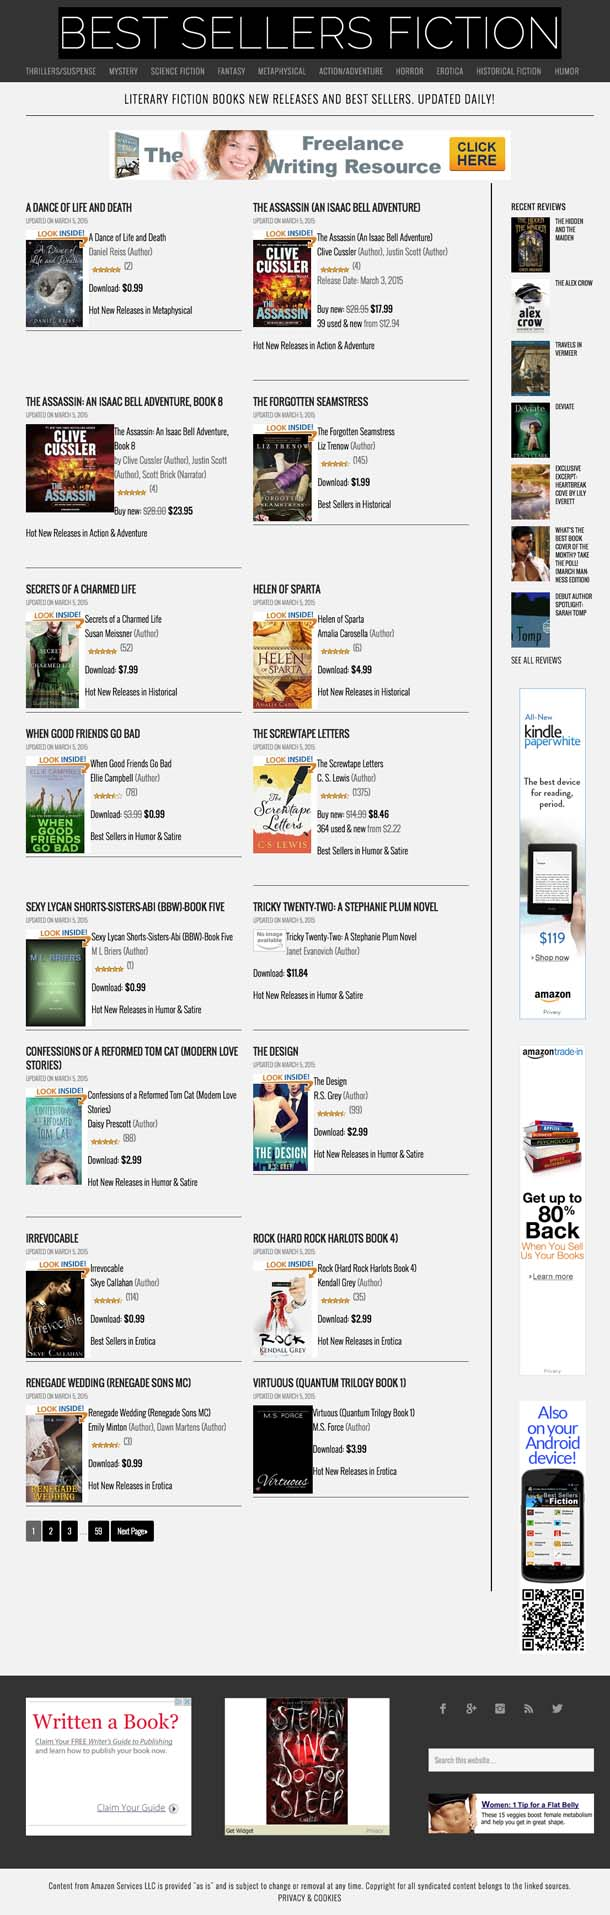 Literature & fiction books - new releases and best sellers - updated daily!